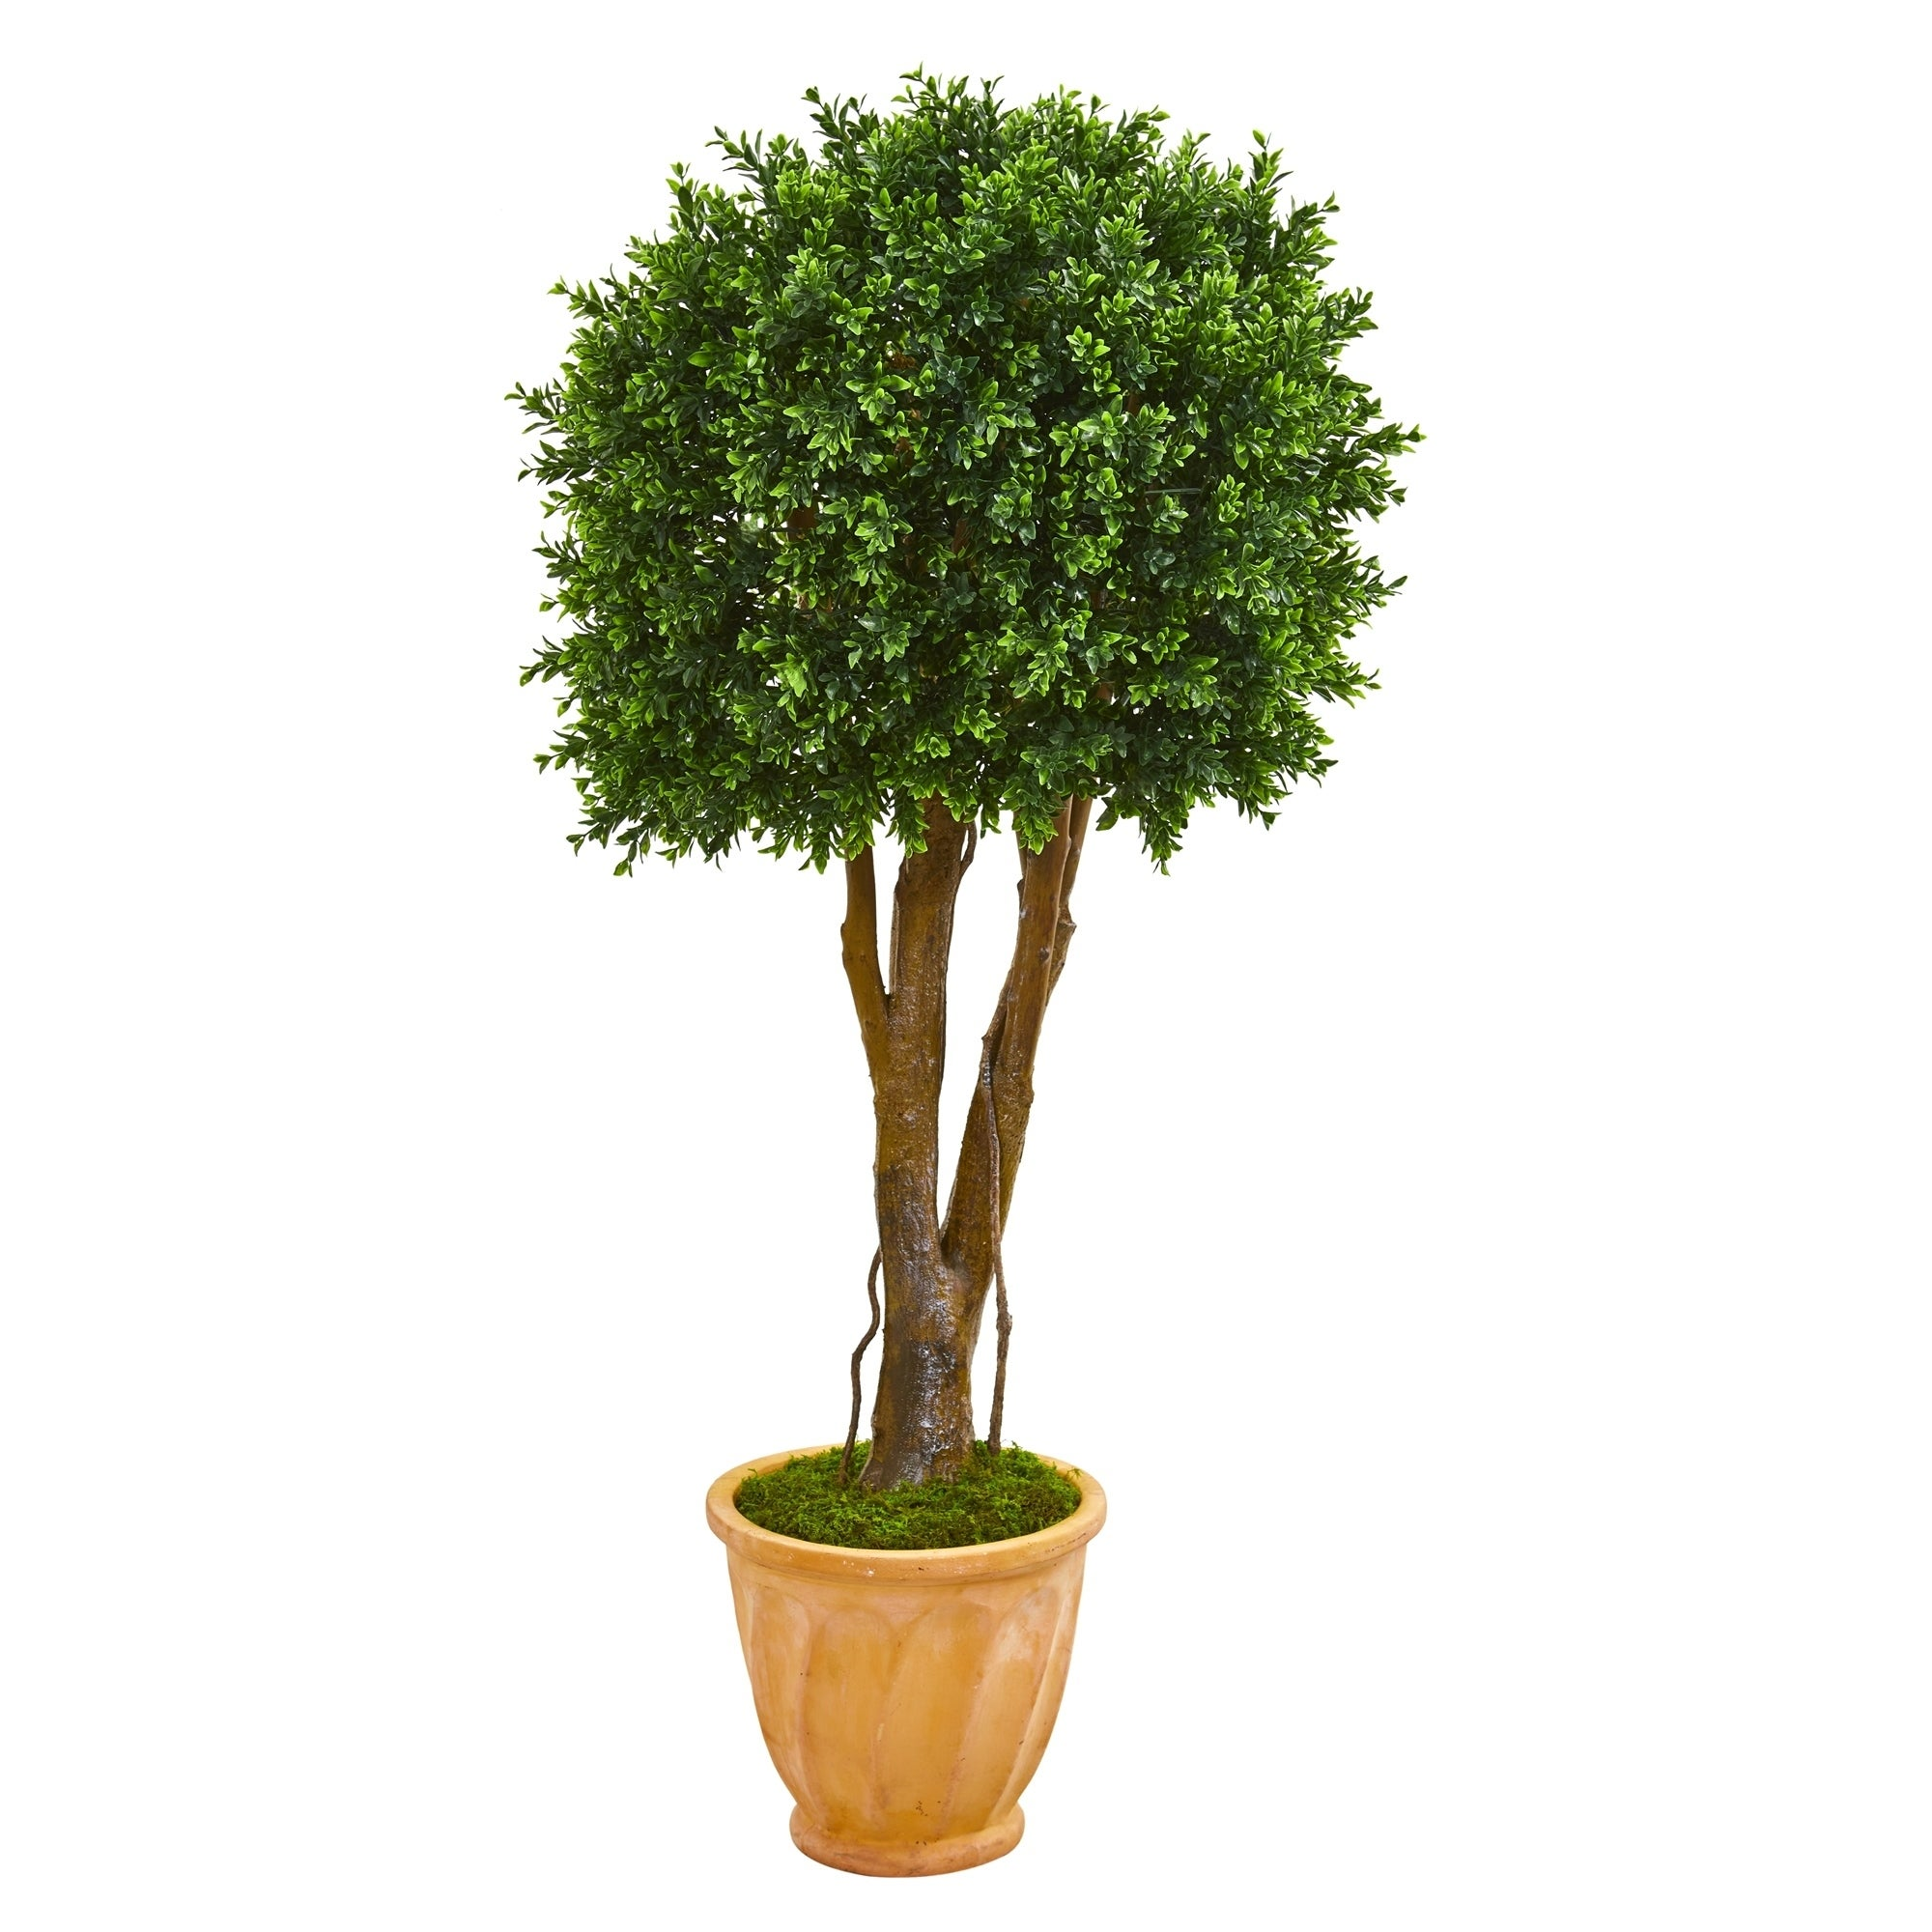 50 Boxwood Artificial Topiary Tree in Terra-Cotta Planter UV Resistant (Indoor/Outdoor)